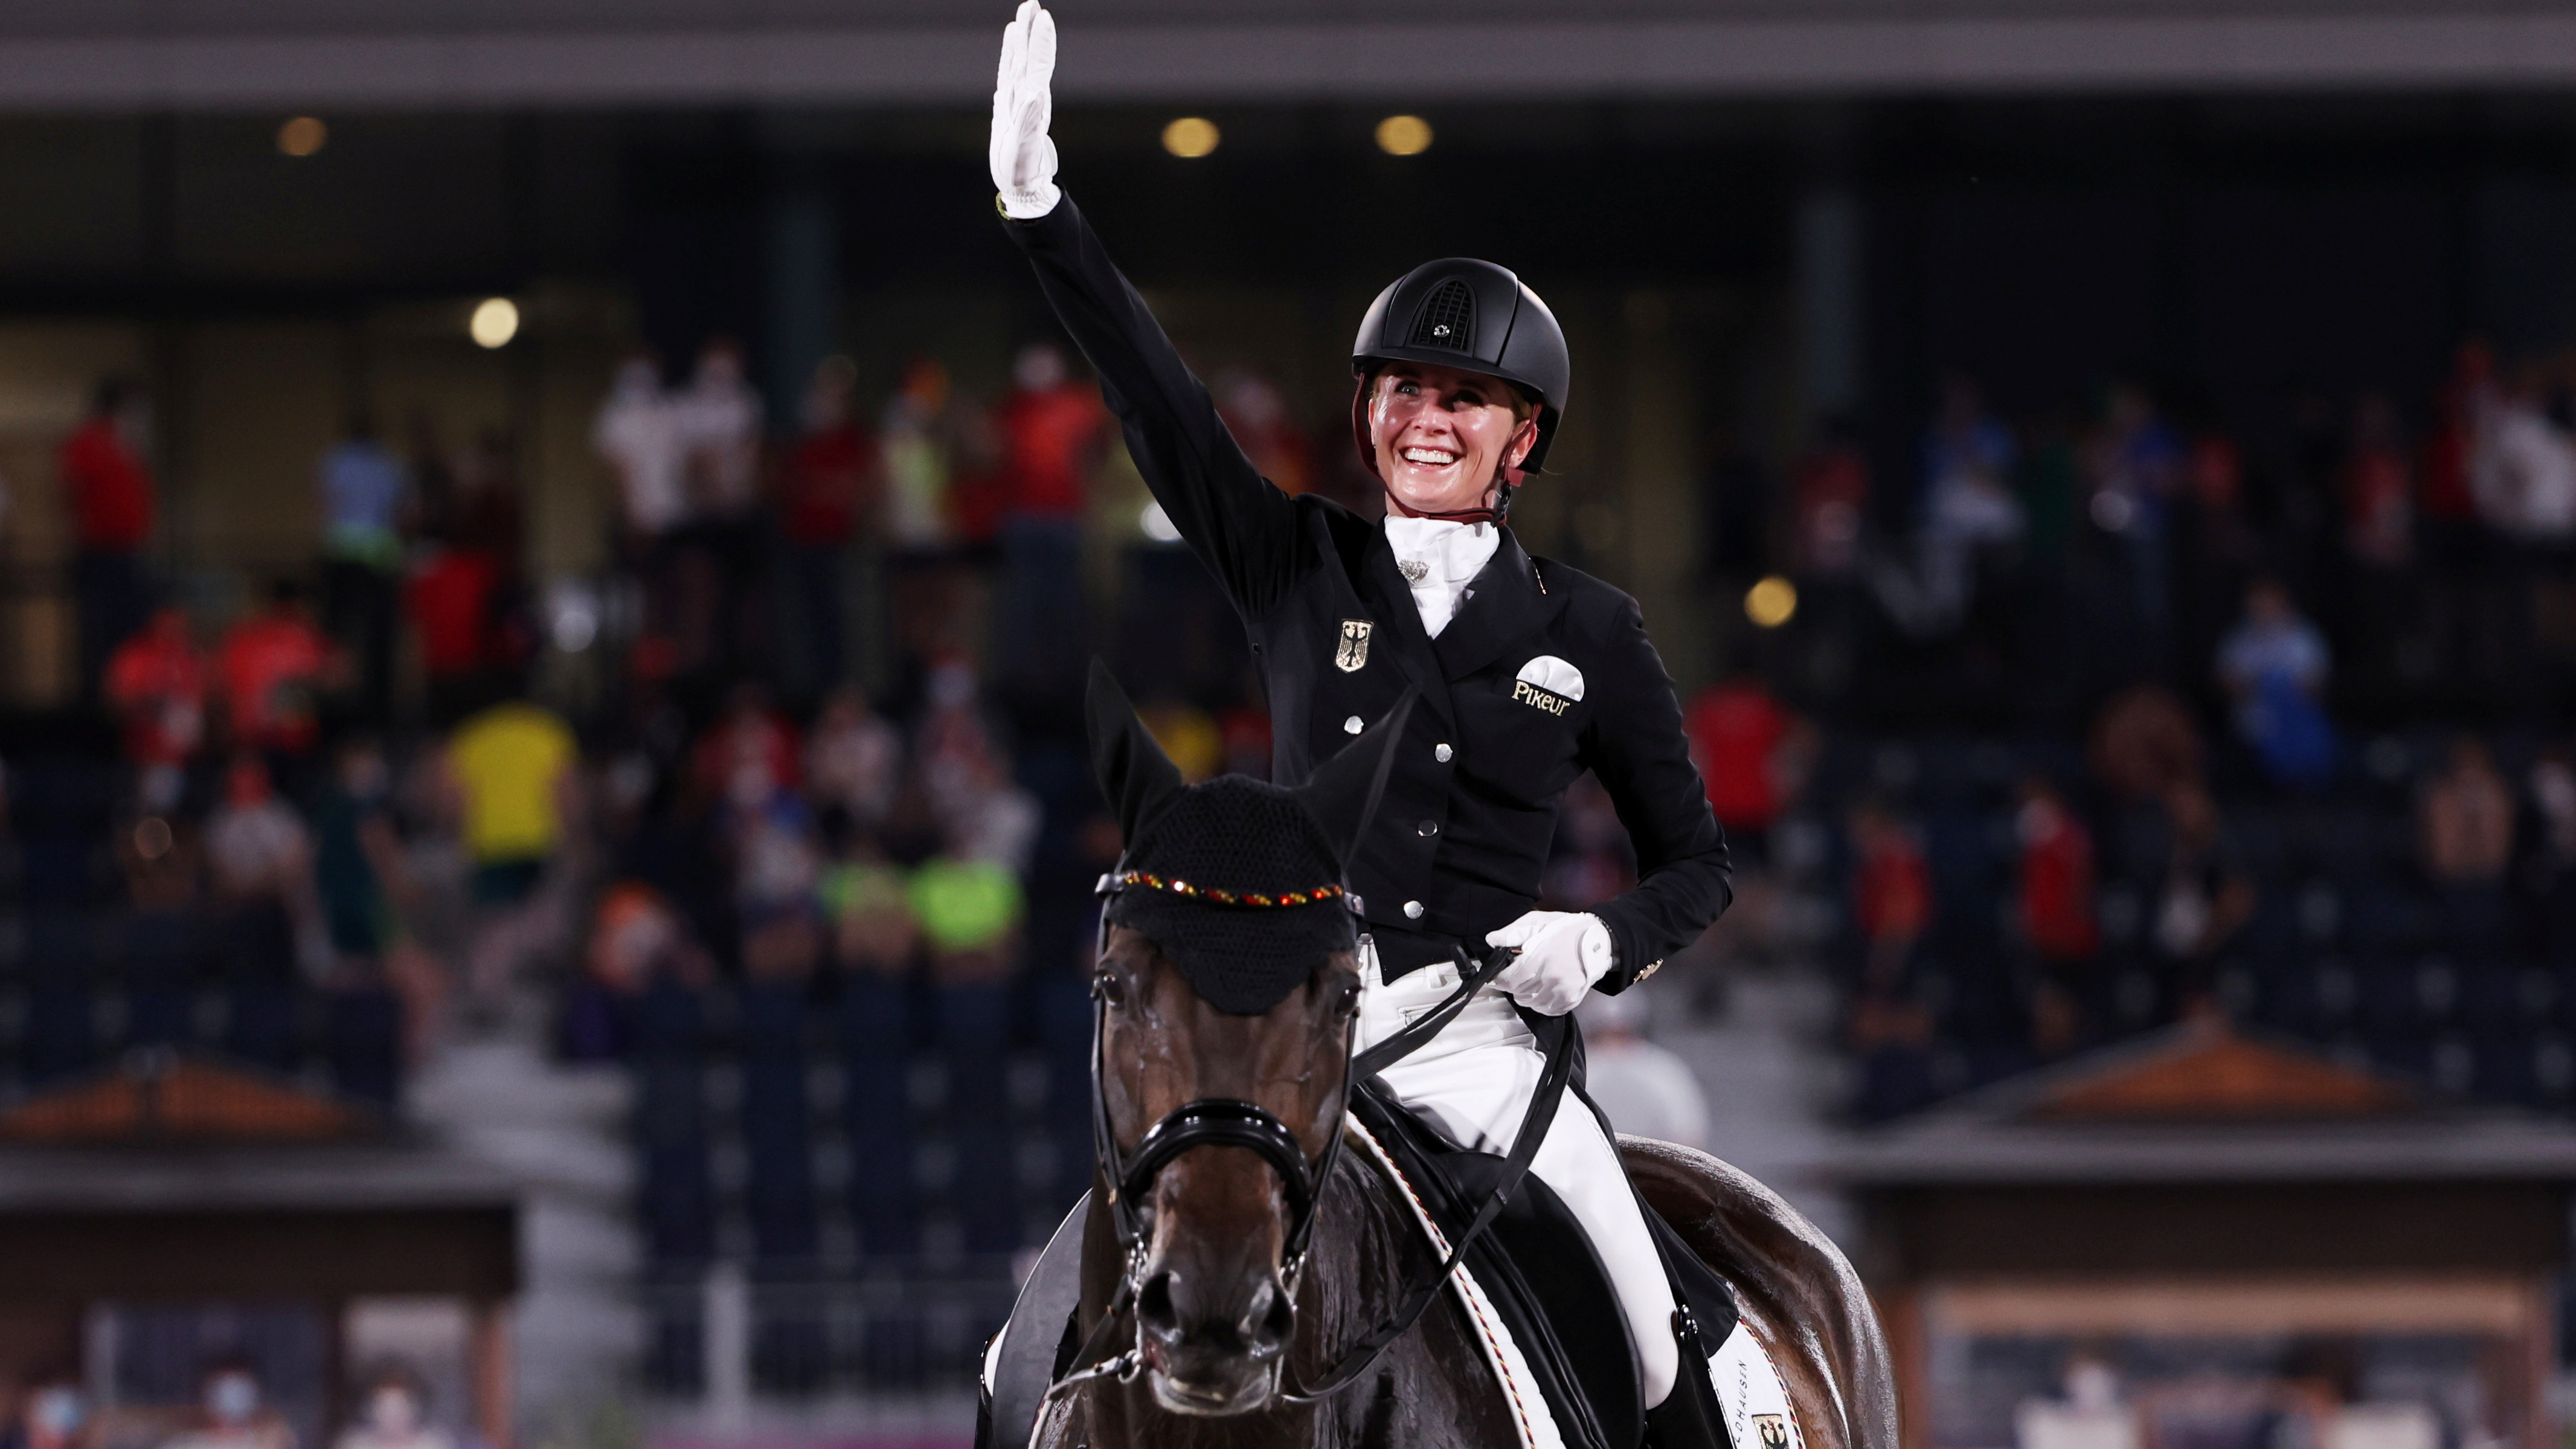 Tokyo 2020 Olympics - Equestrian - Dressage - Grand Prix Special - Team - Equestrian Park - Tokyo, Japan - July 27, 2021. Jessica von Bredow-Werndl of Germany on her horse TSF Dalera reacts. REUTERS/Alkis Konstantinidis